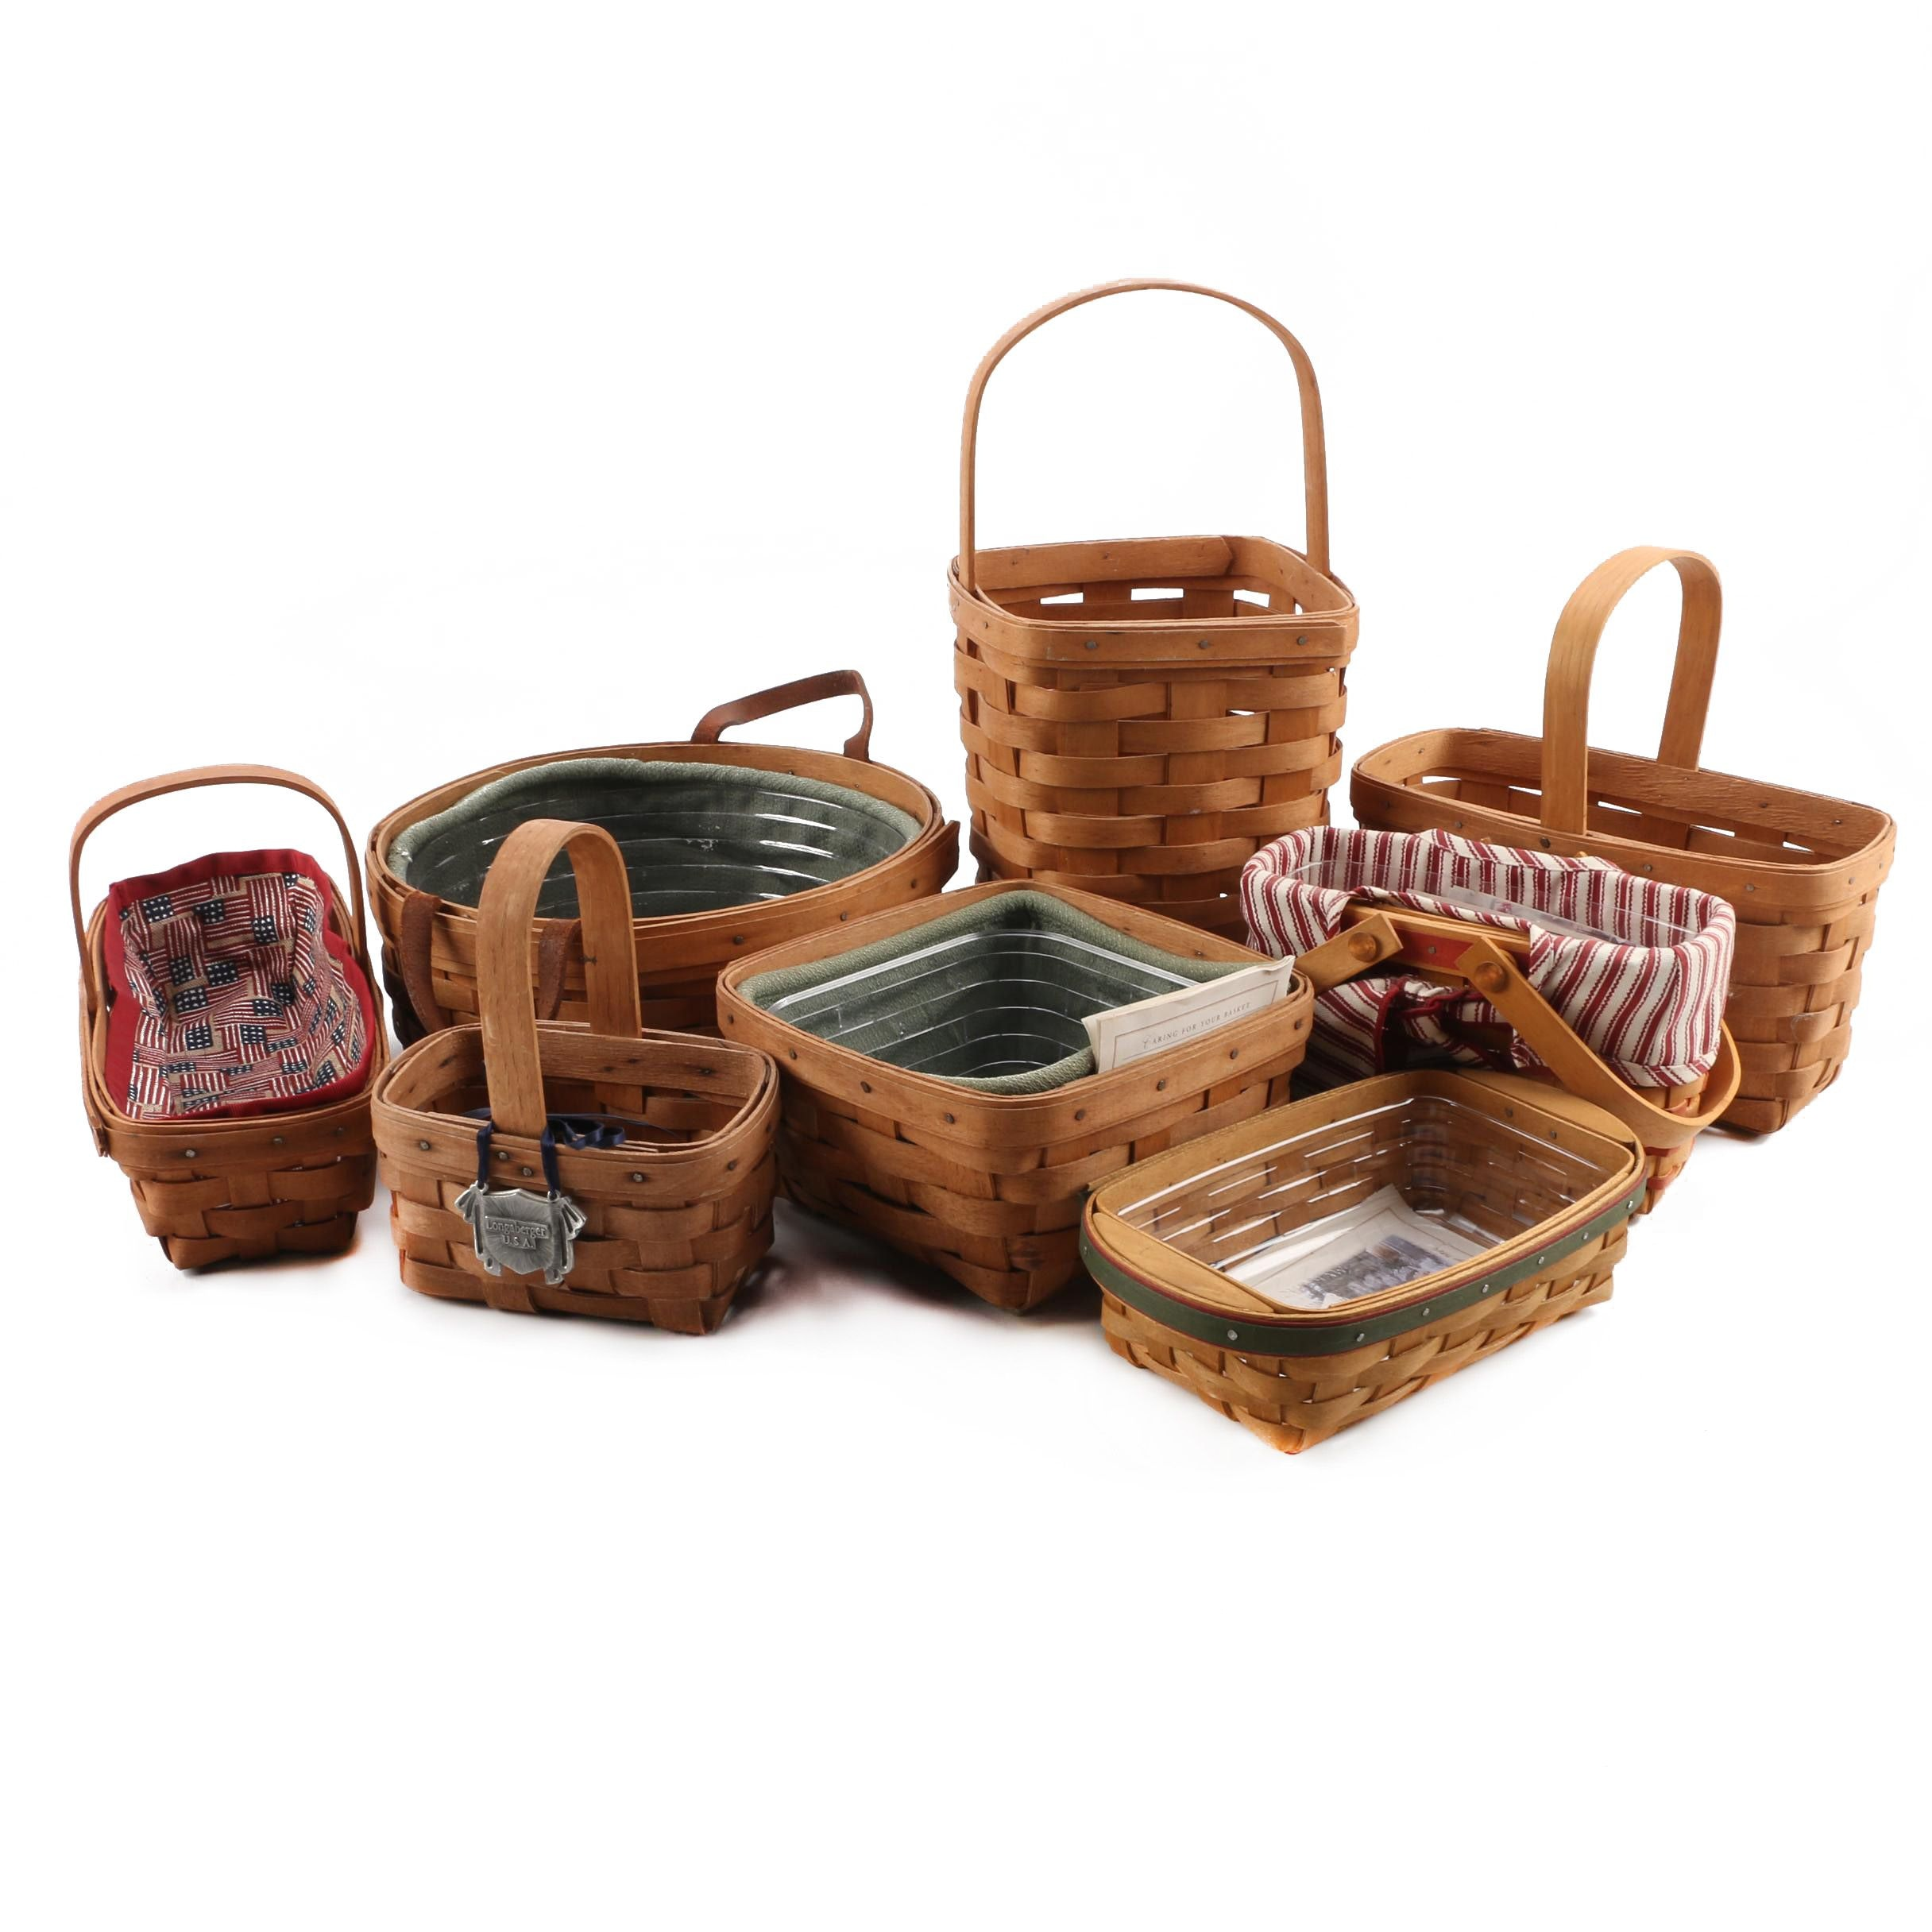 Handwoven Longaberger Baskets with Several Cloth and Plastic Liners